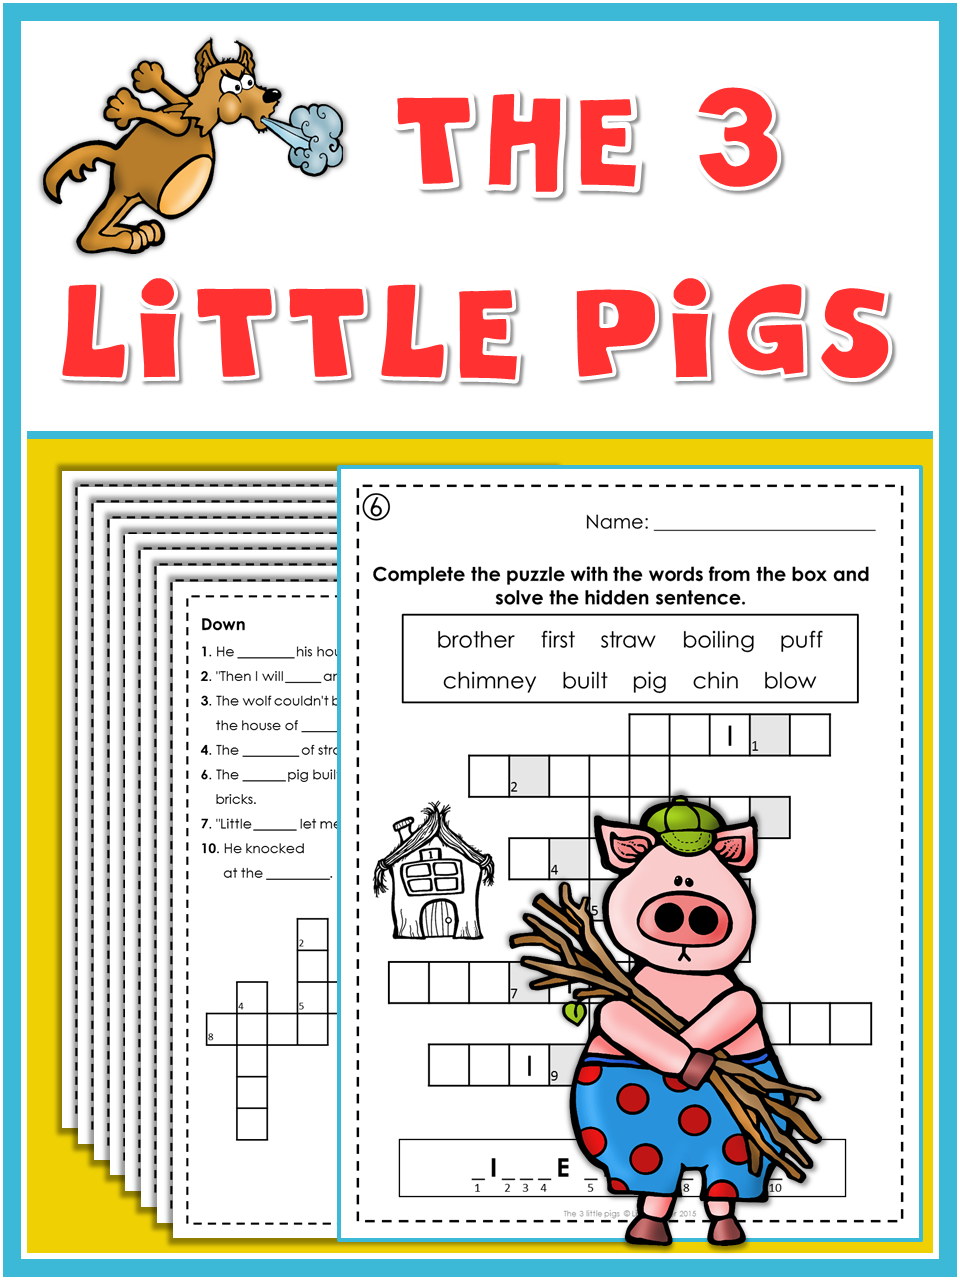 The 3 Little Pigs Puzzle Fun Little Pigs Vocabulary Practice Childrens Stories [ 1280 x 960 Pixel ]